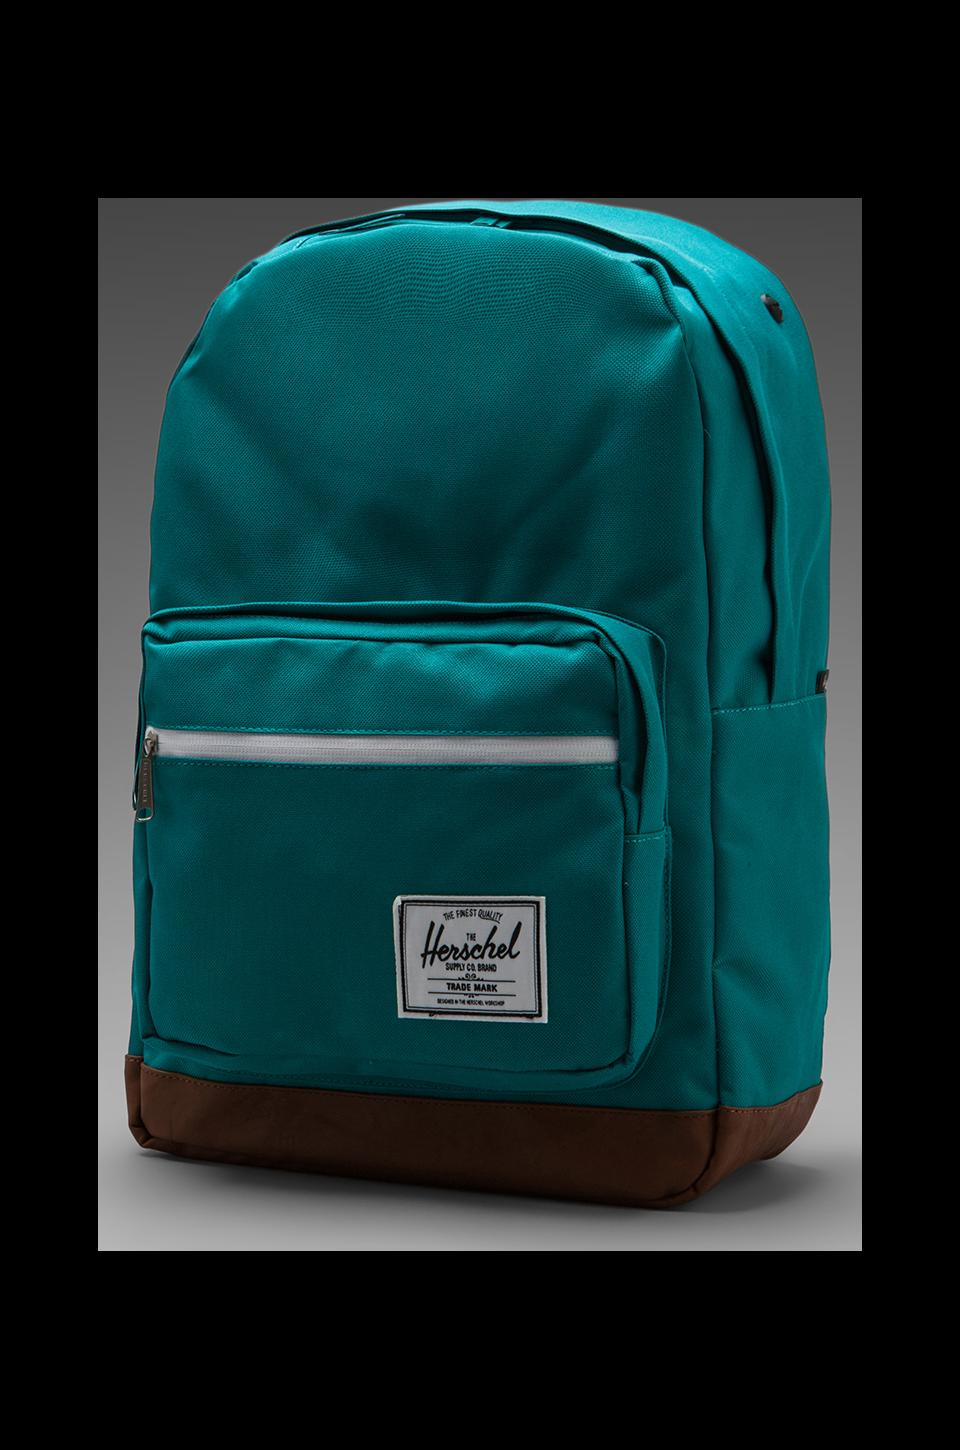 Herschel Supply Co. Pop Quiz Backpack in Teal